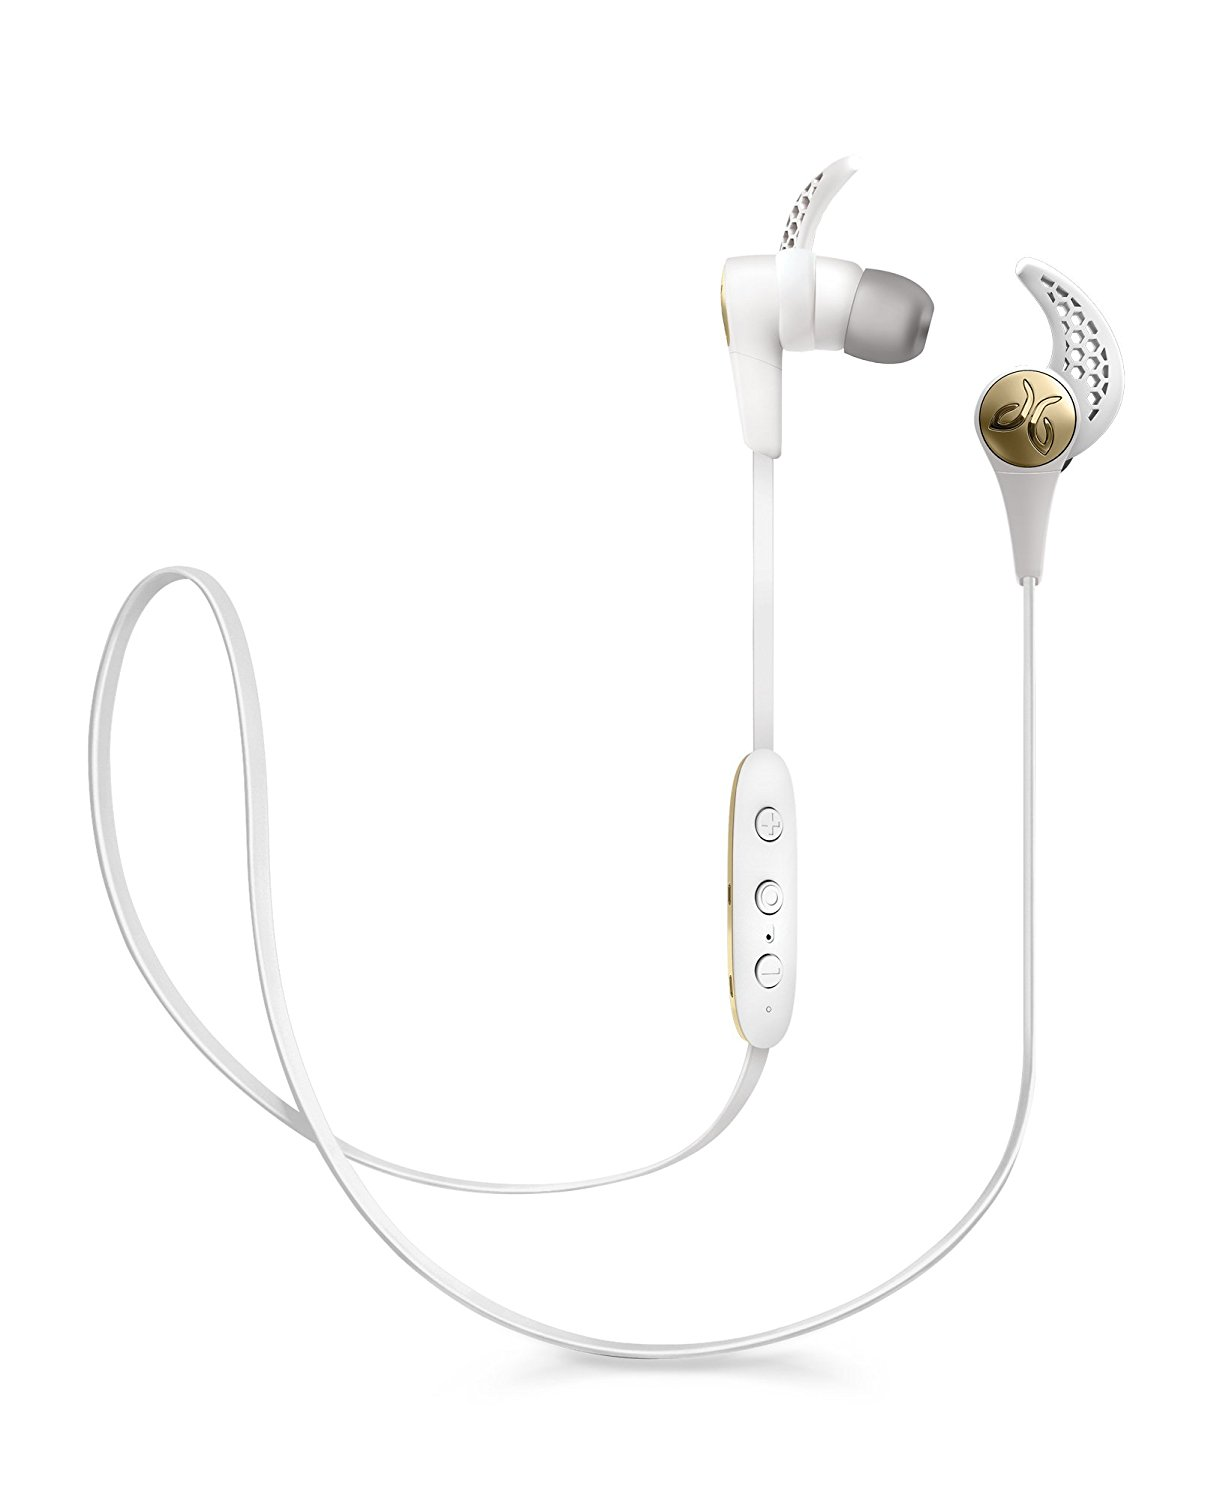 5 Speakers Headphones Earbuds To Use Trail Riding